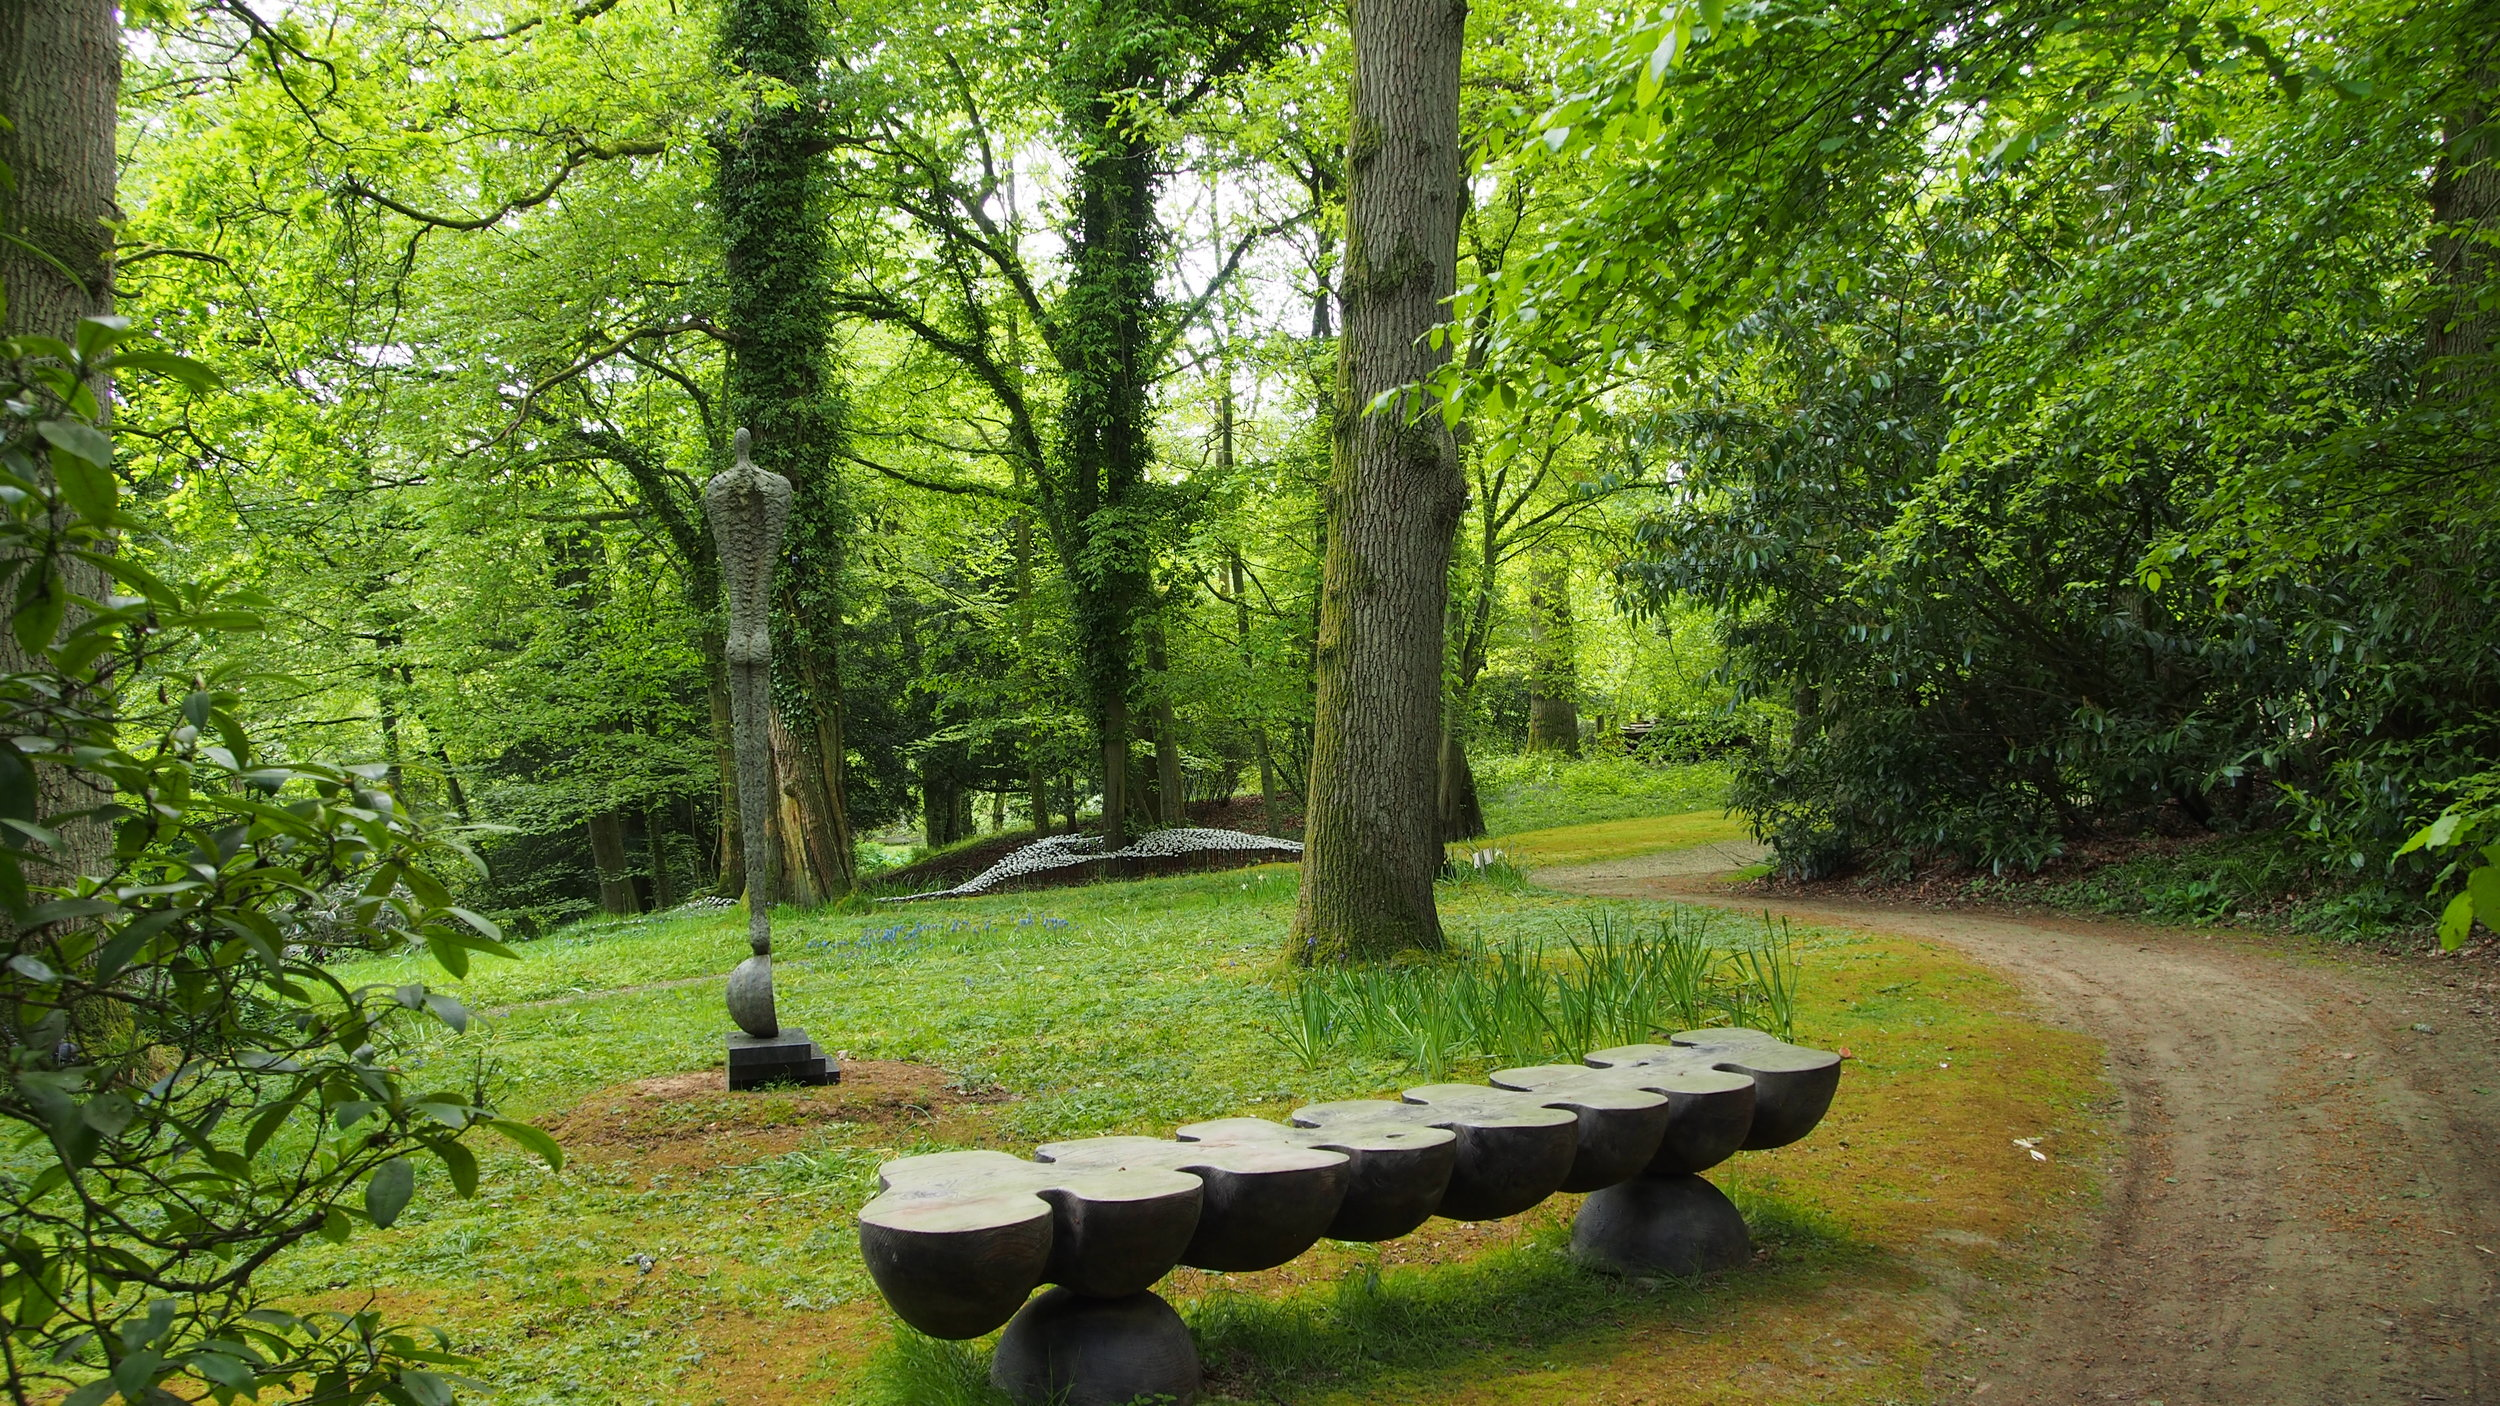 'Amorphos Bench' Tom Nicholson-Smith & 'Breath Balance Grow' Michael Seller